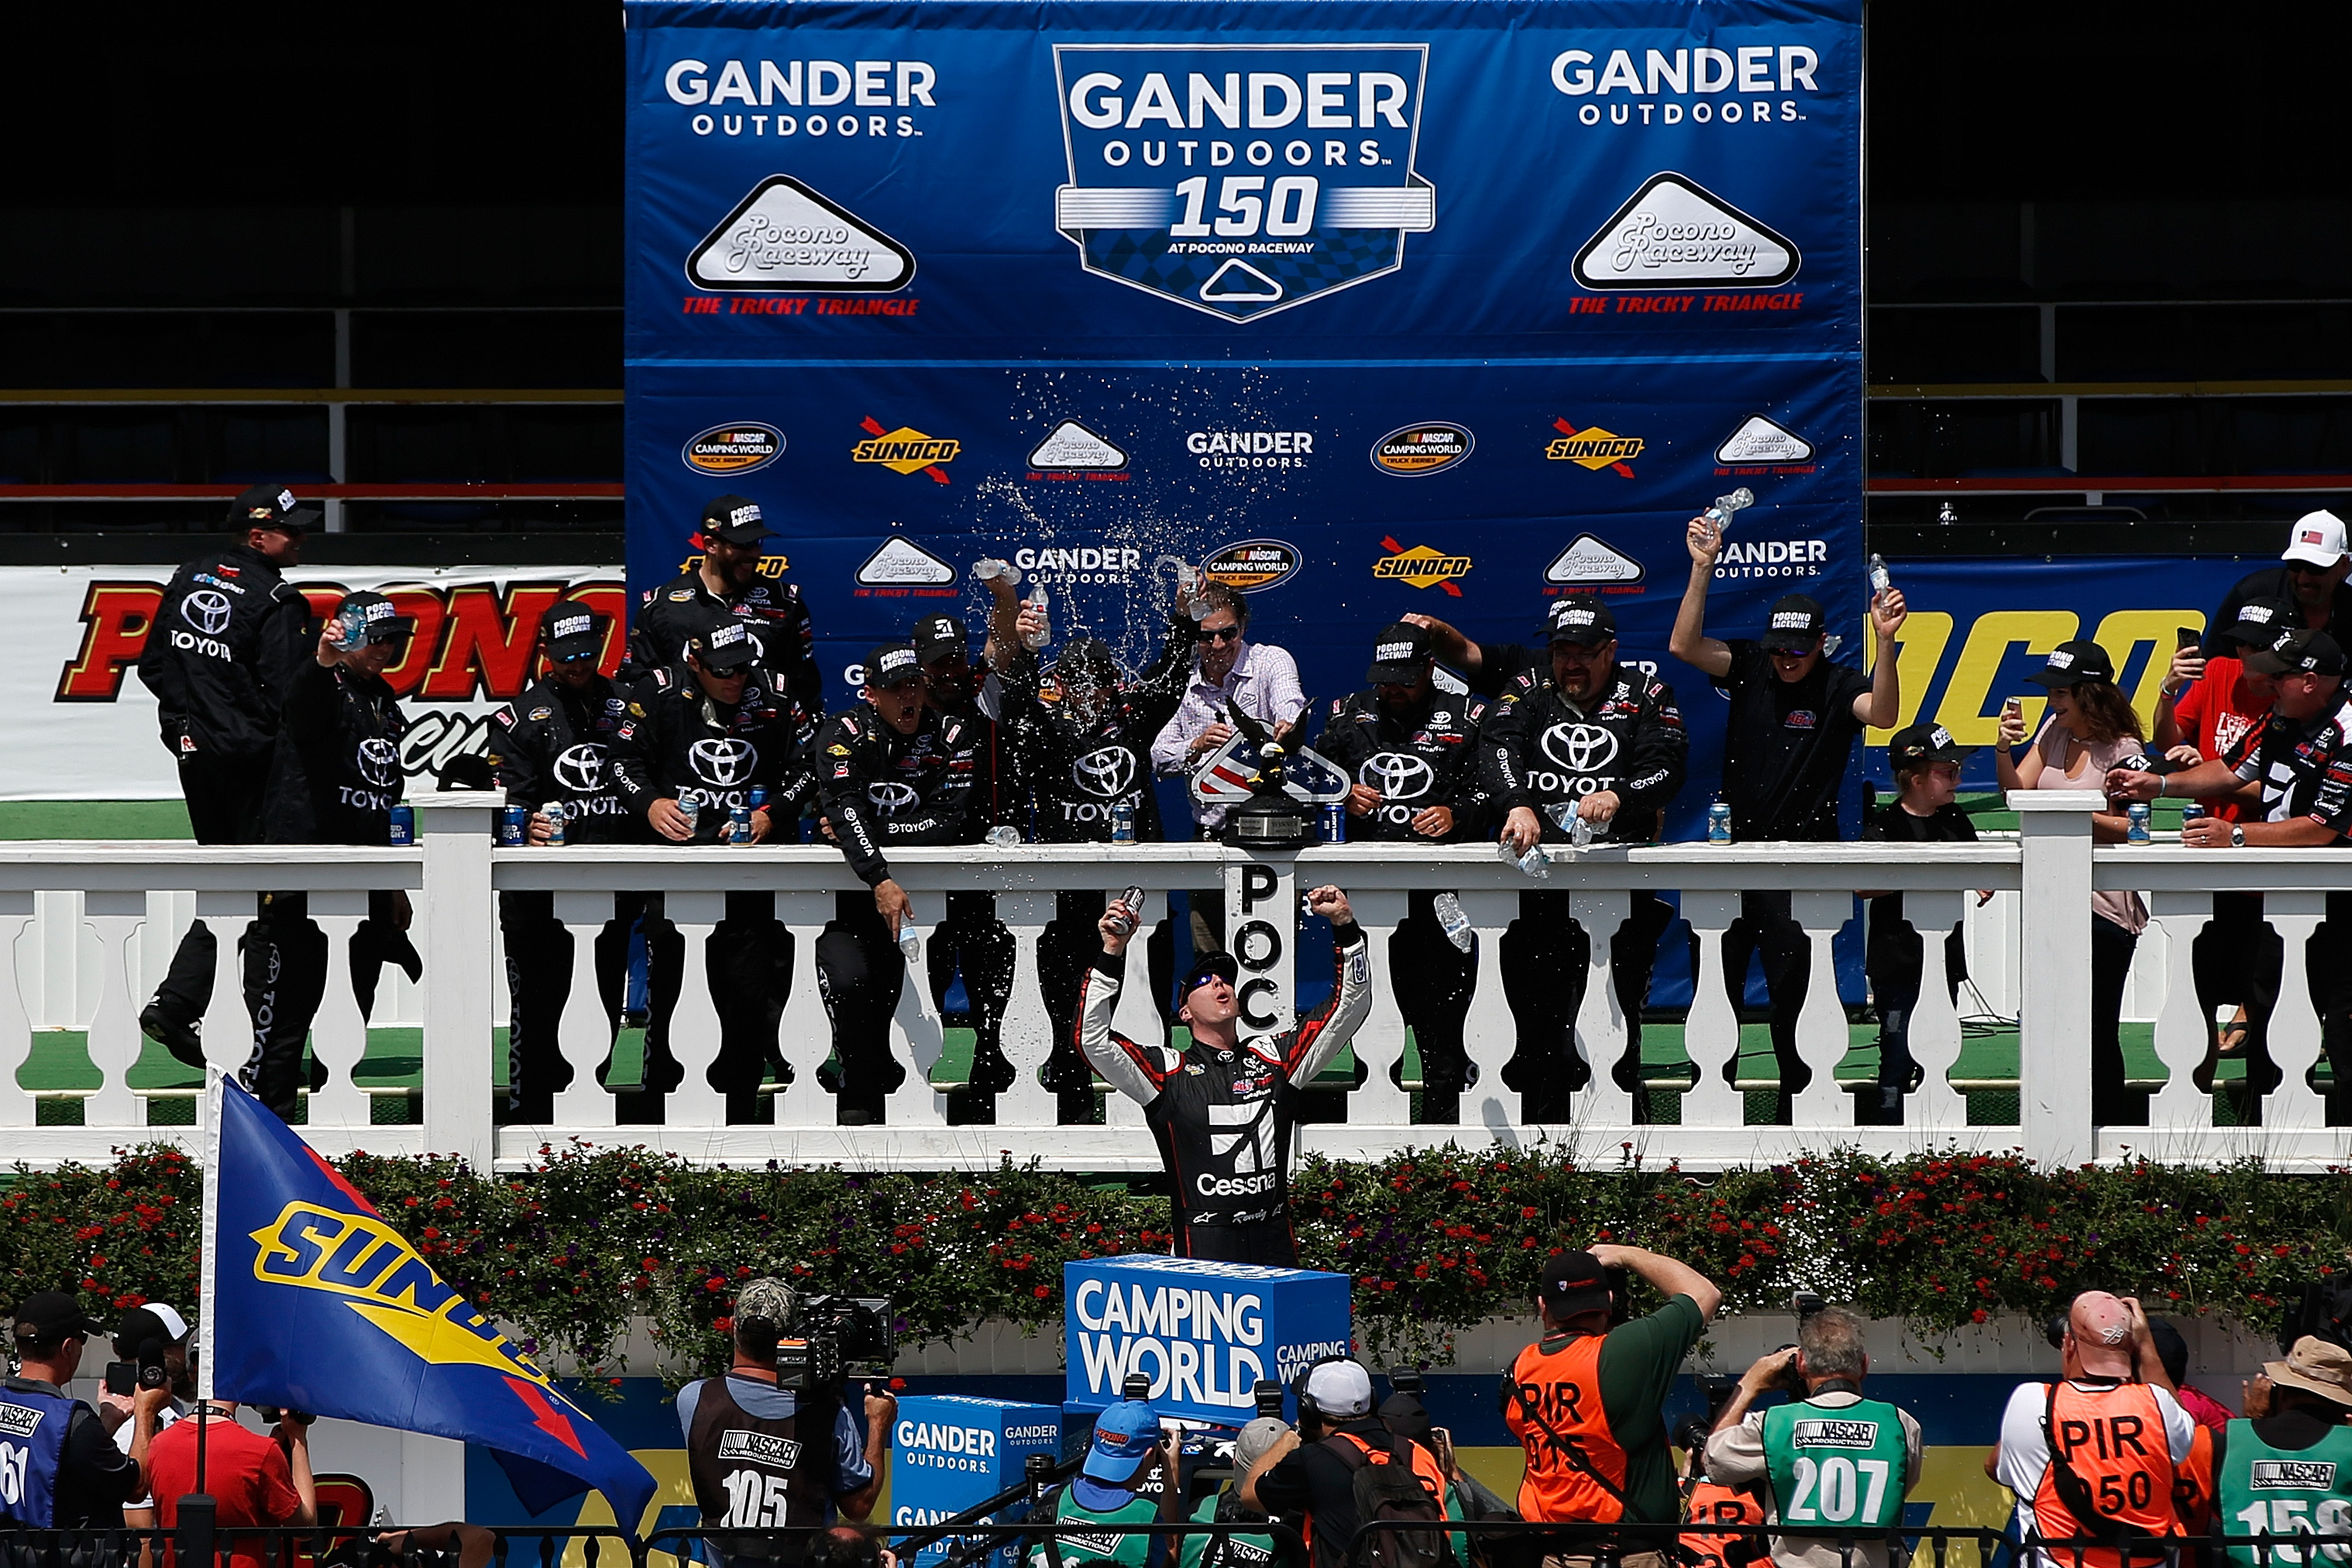 Kyle Busch wins the NASCAR Truck Series race at Pocono Raceway